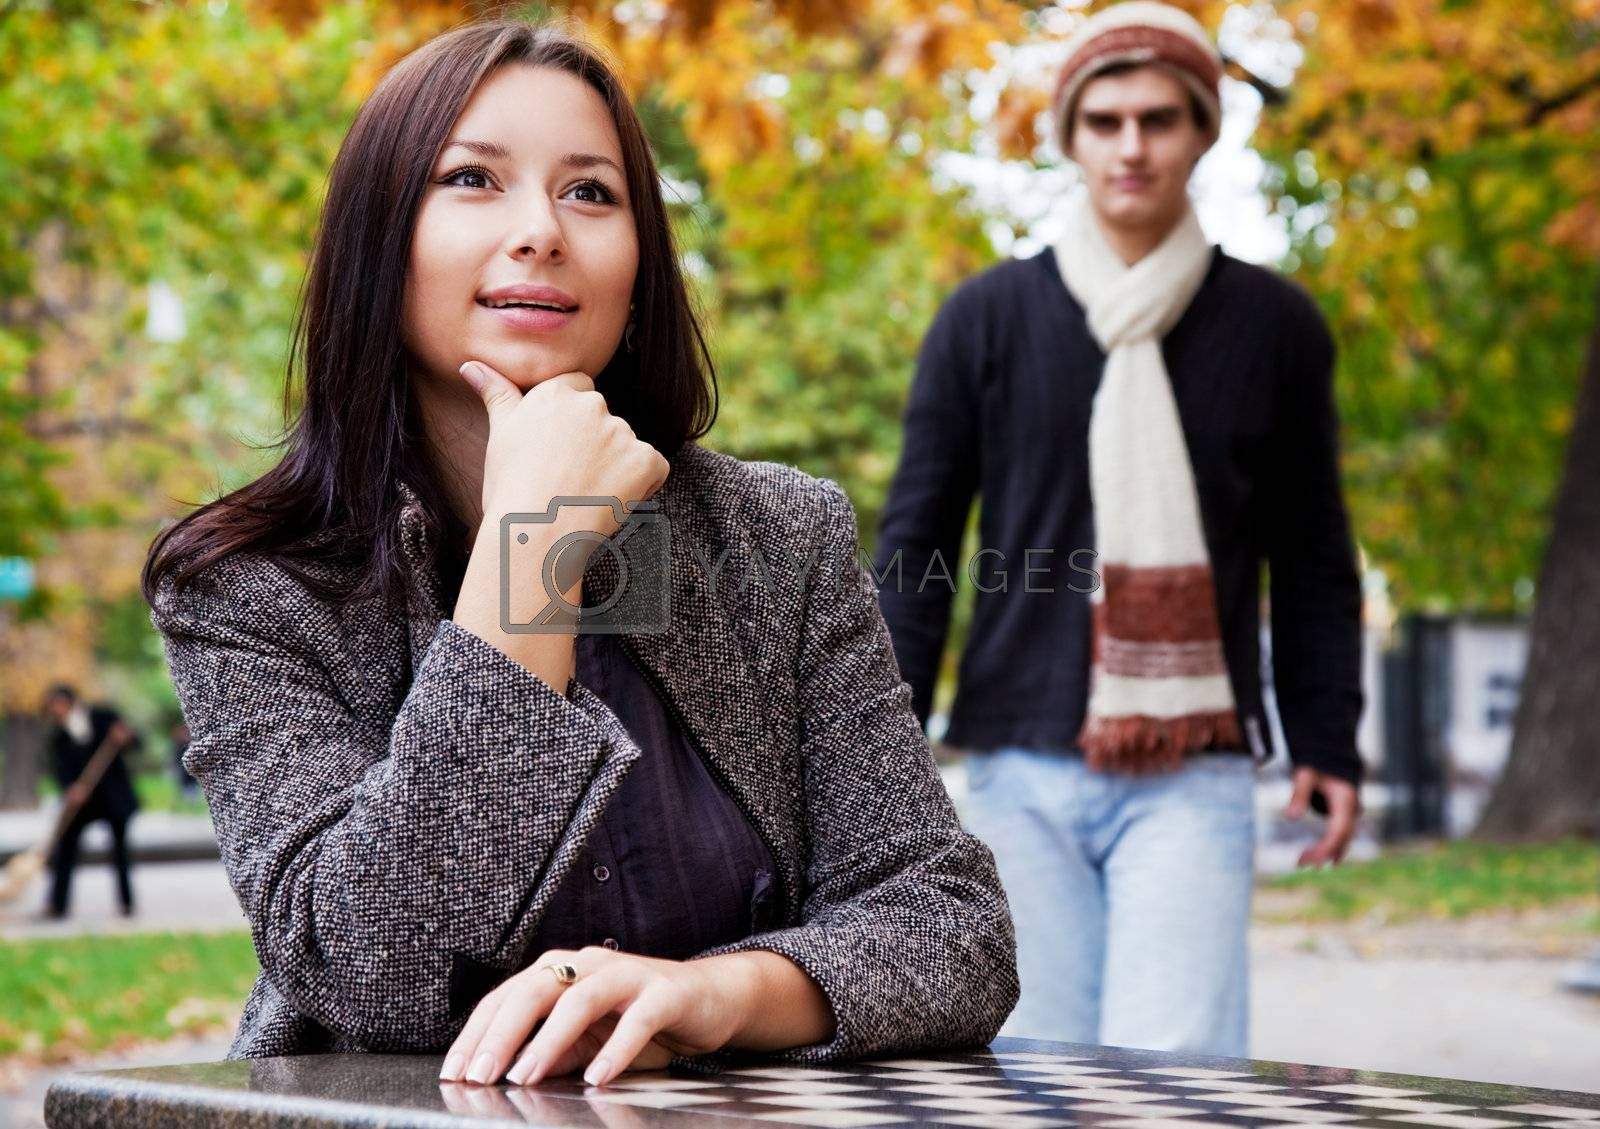 Young woman sitting in park, male coming from behind